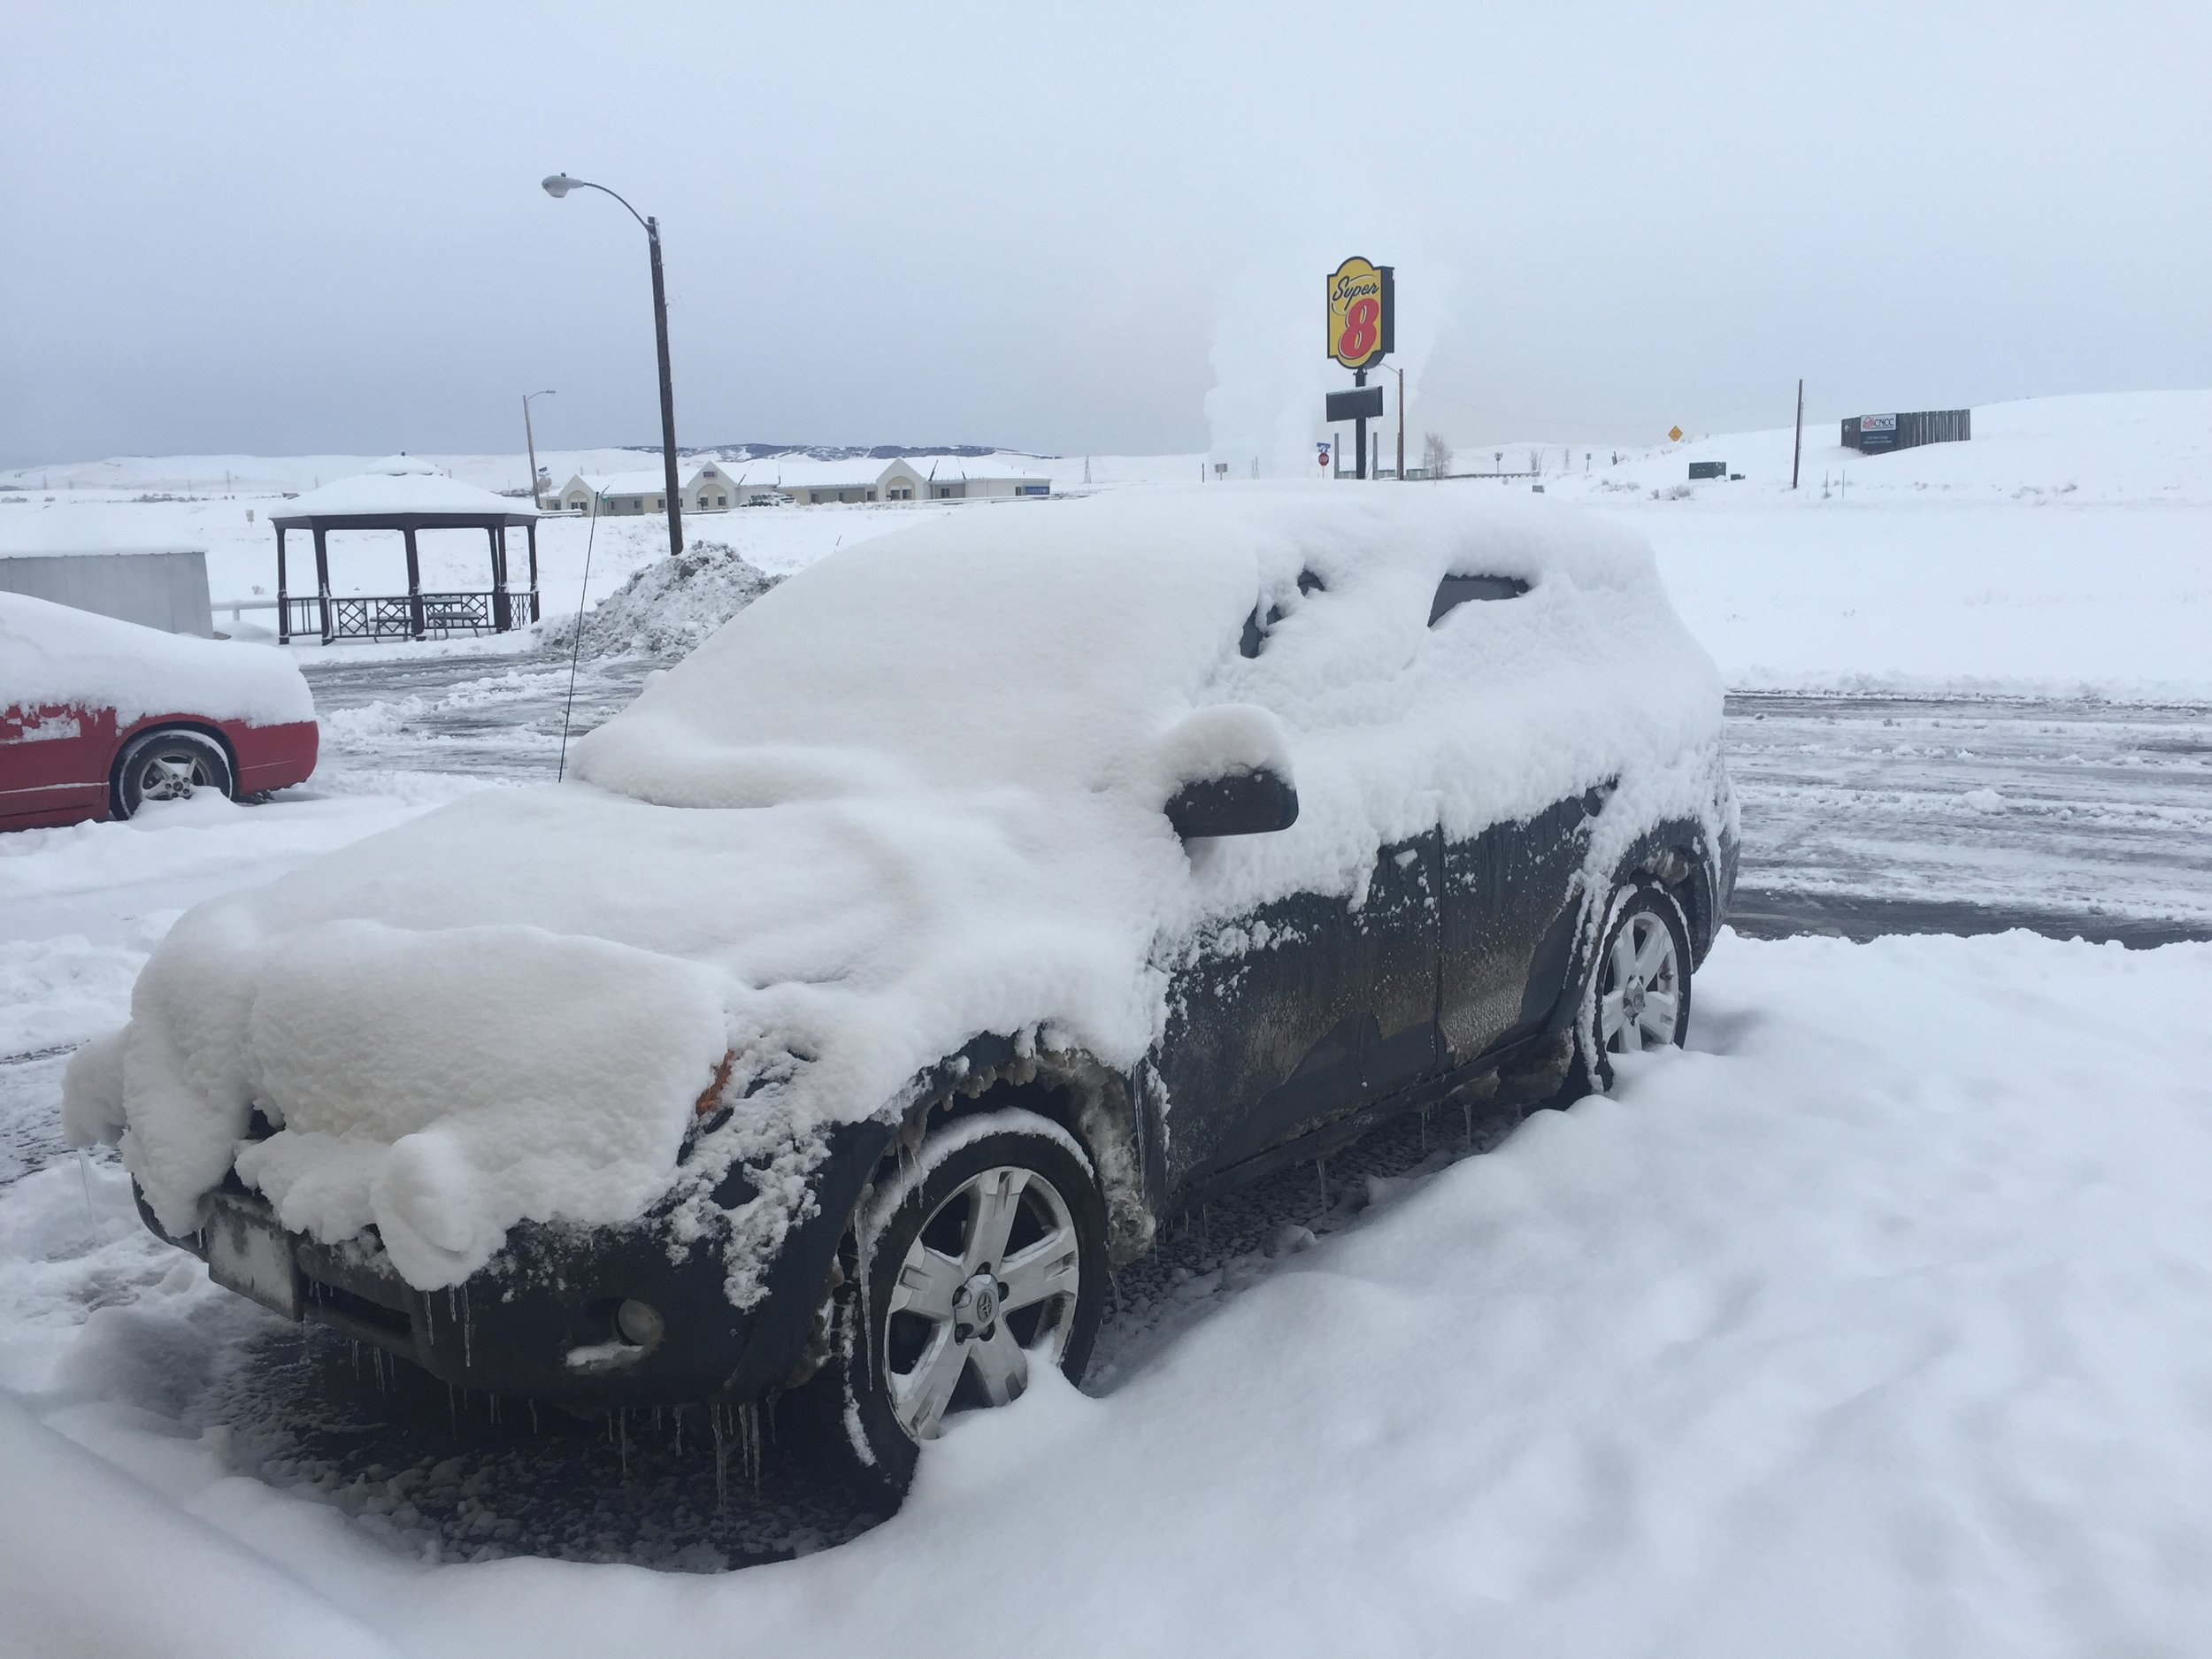 My car the morning after the snow storm